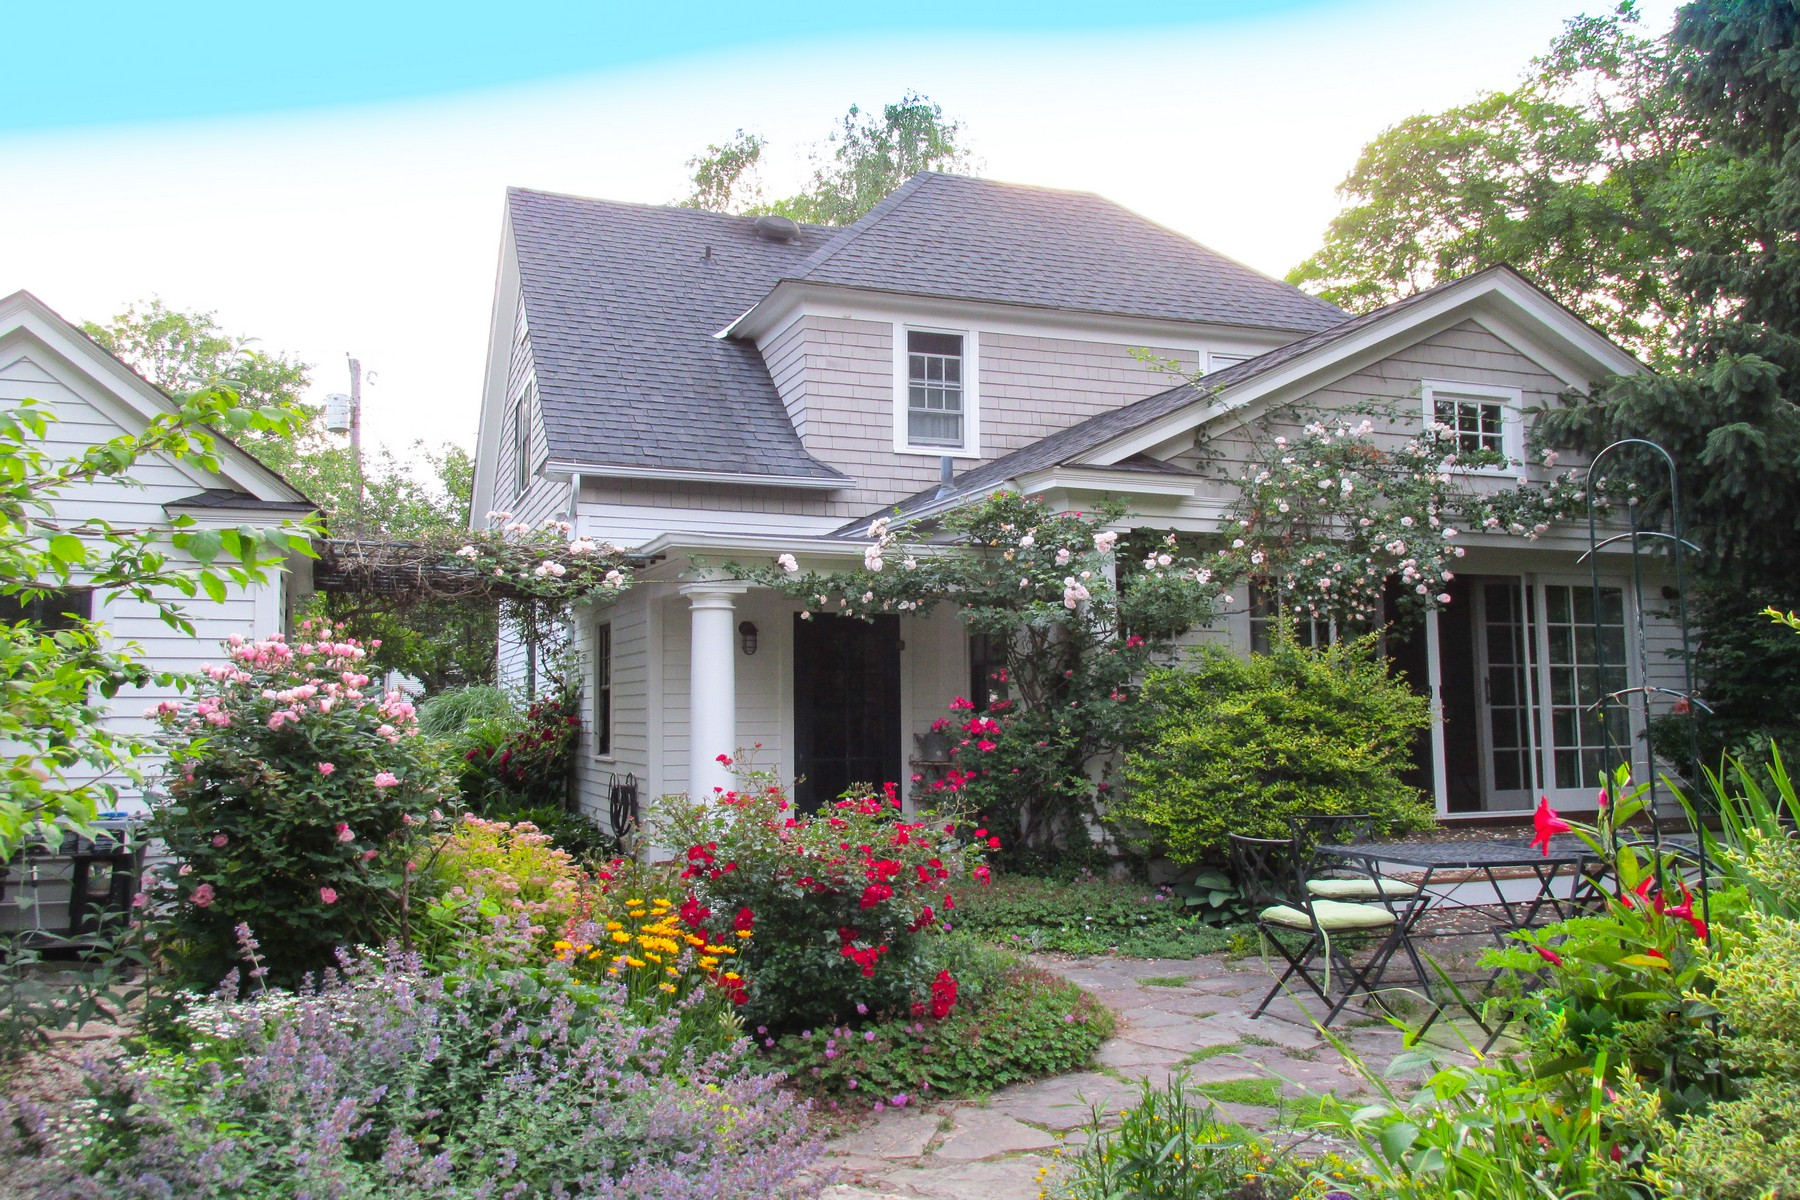 Single Family Homes for Sale at Greenport 318 5th Street Greenport, New York 11944 United States